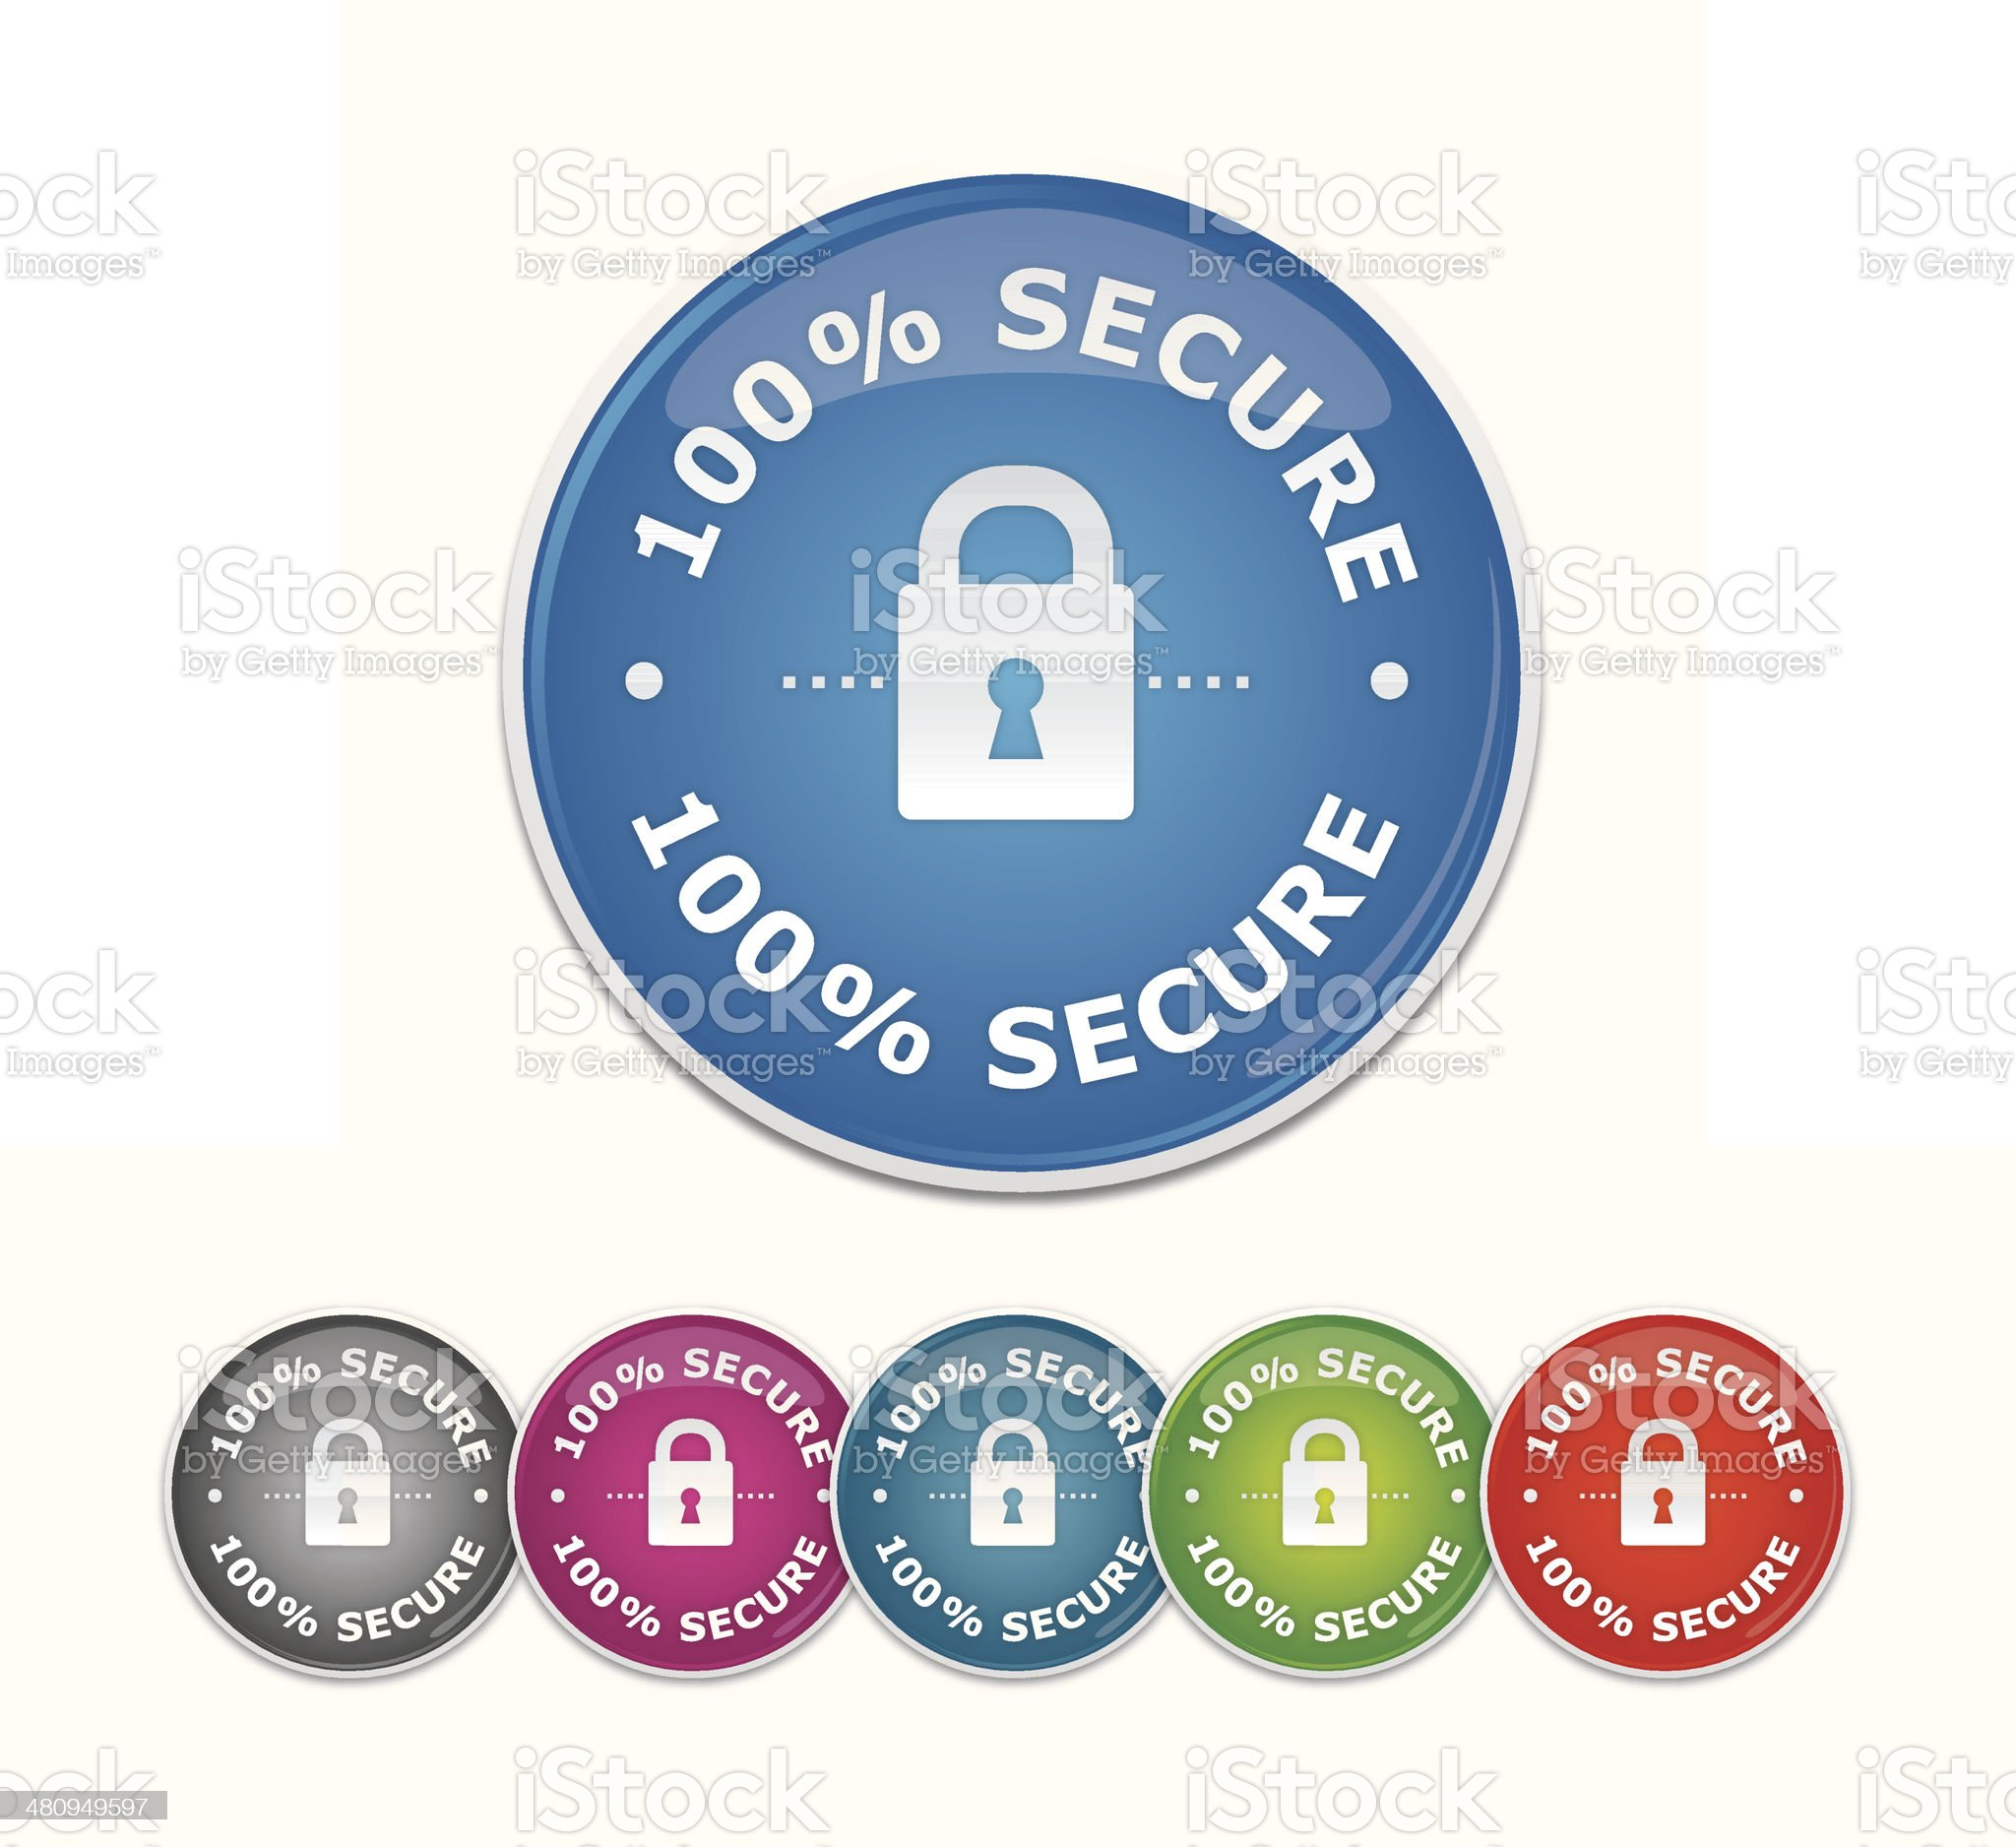 Secure shopping glossy buttons royalty-free stock vector art